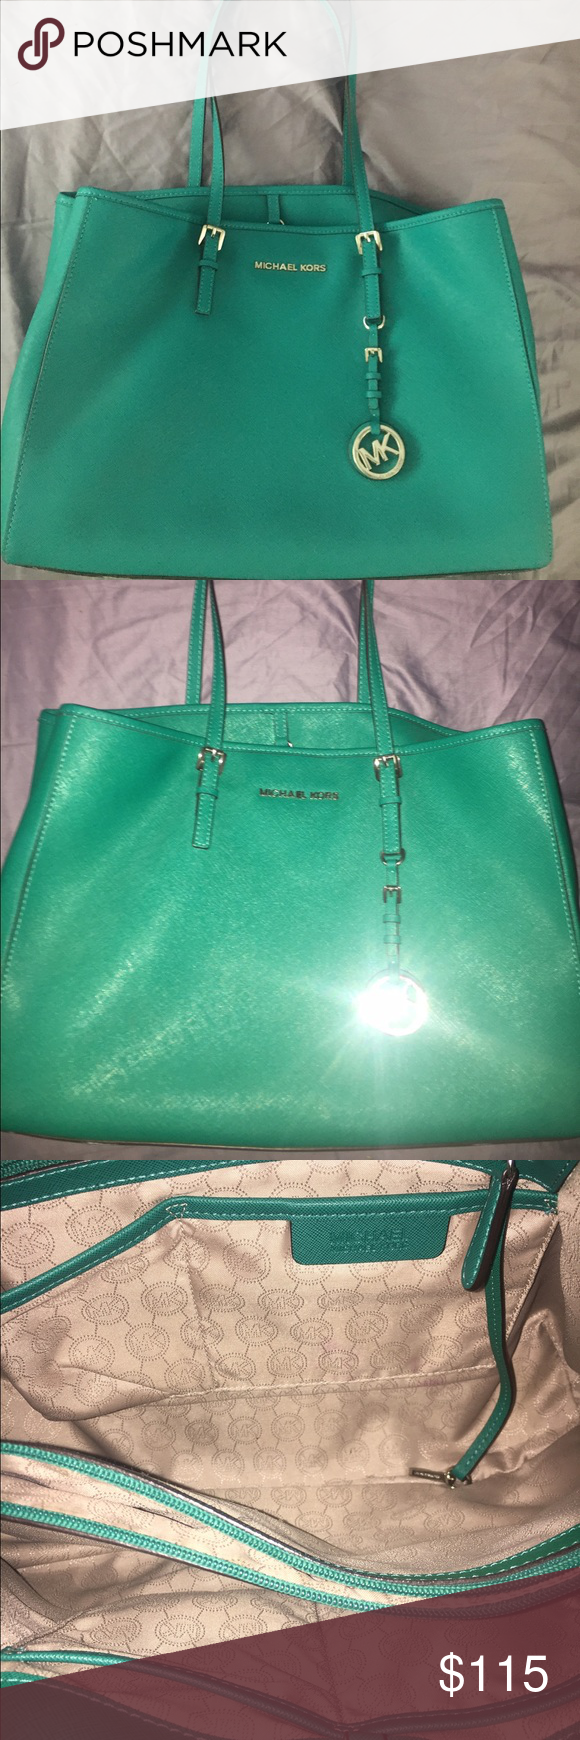 Michael Kors Tote Beautiful color teal/green. Great condition super roomy bag and 100% authentic Michael Kors Bags Totes